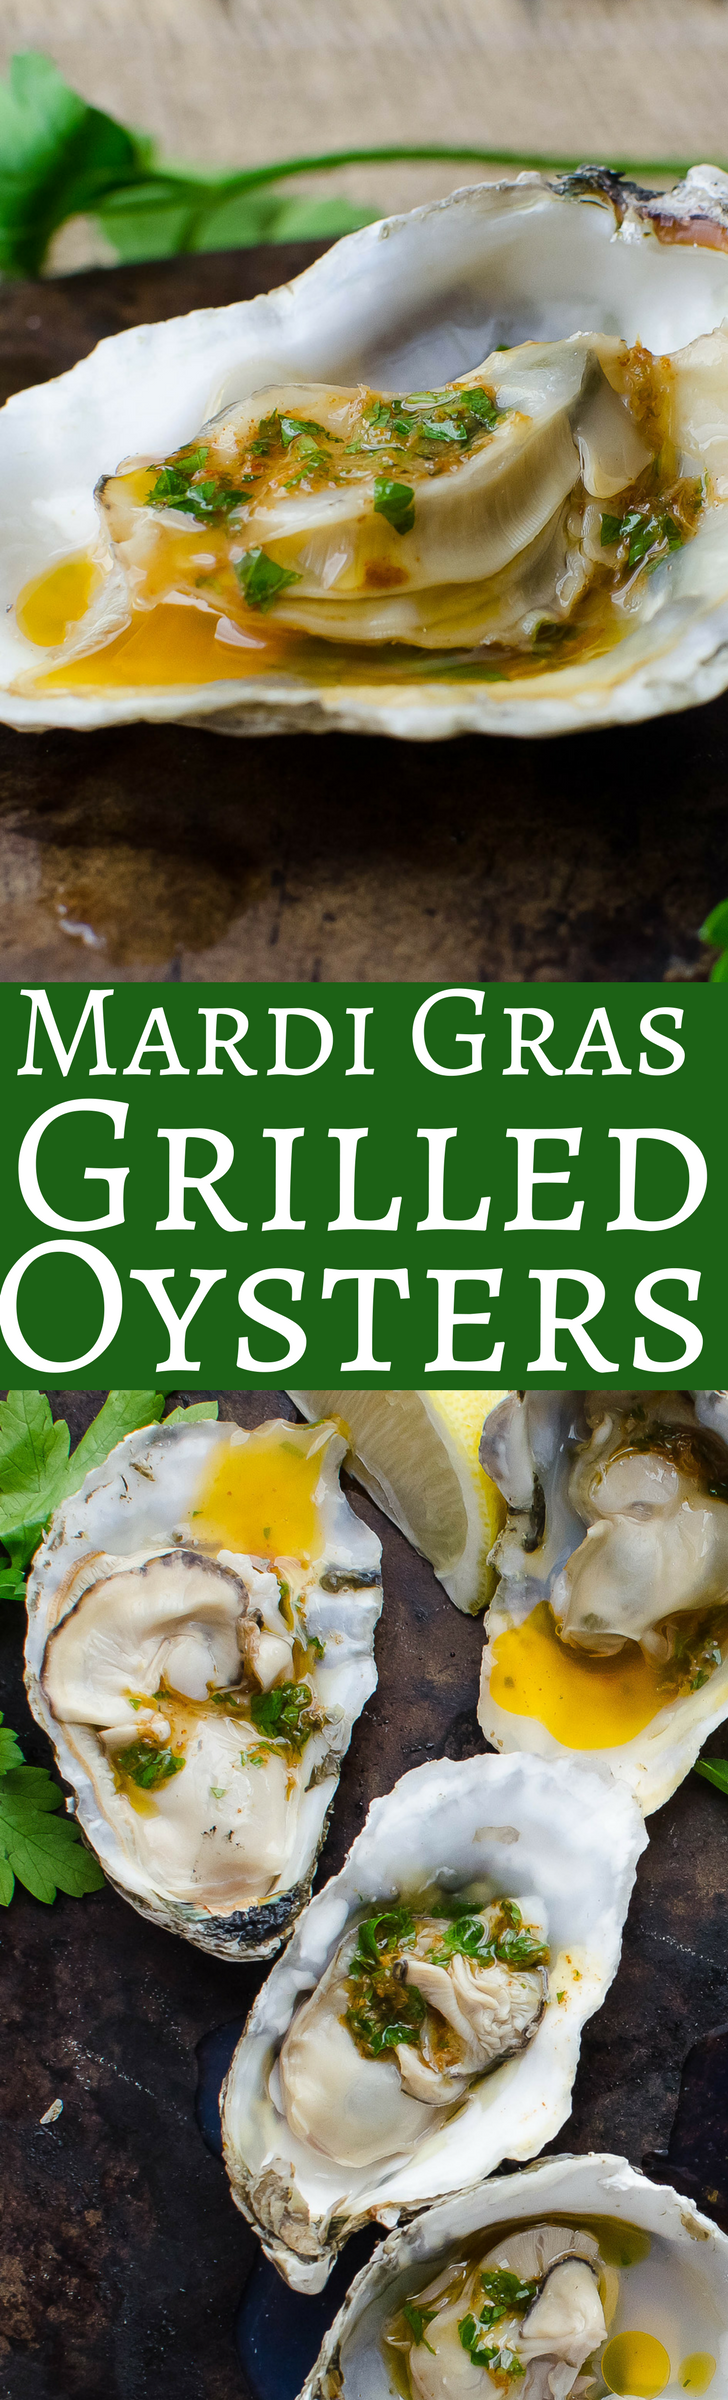 This simple recipe for New Orleans inspired grilled oysters is drenched with tangy spicy Cajun flavor!